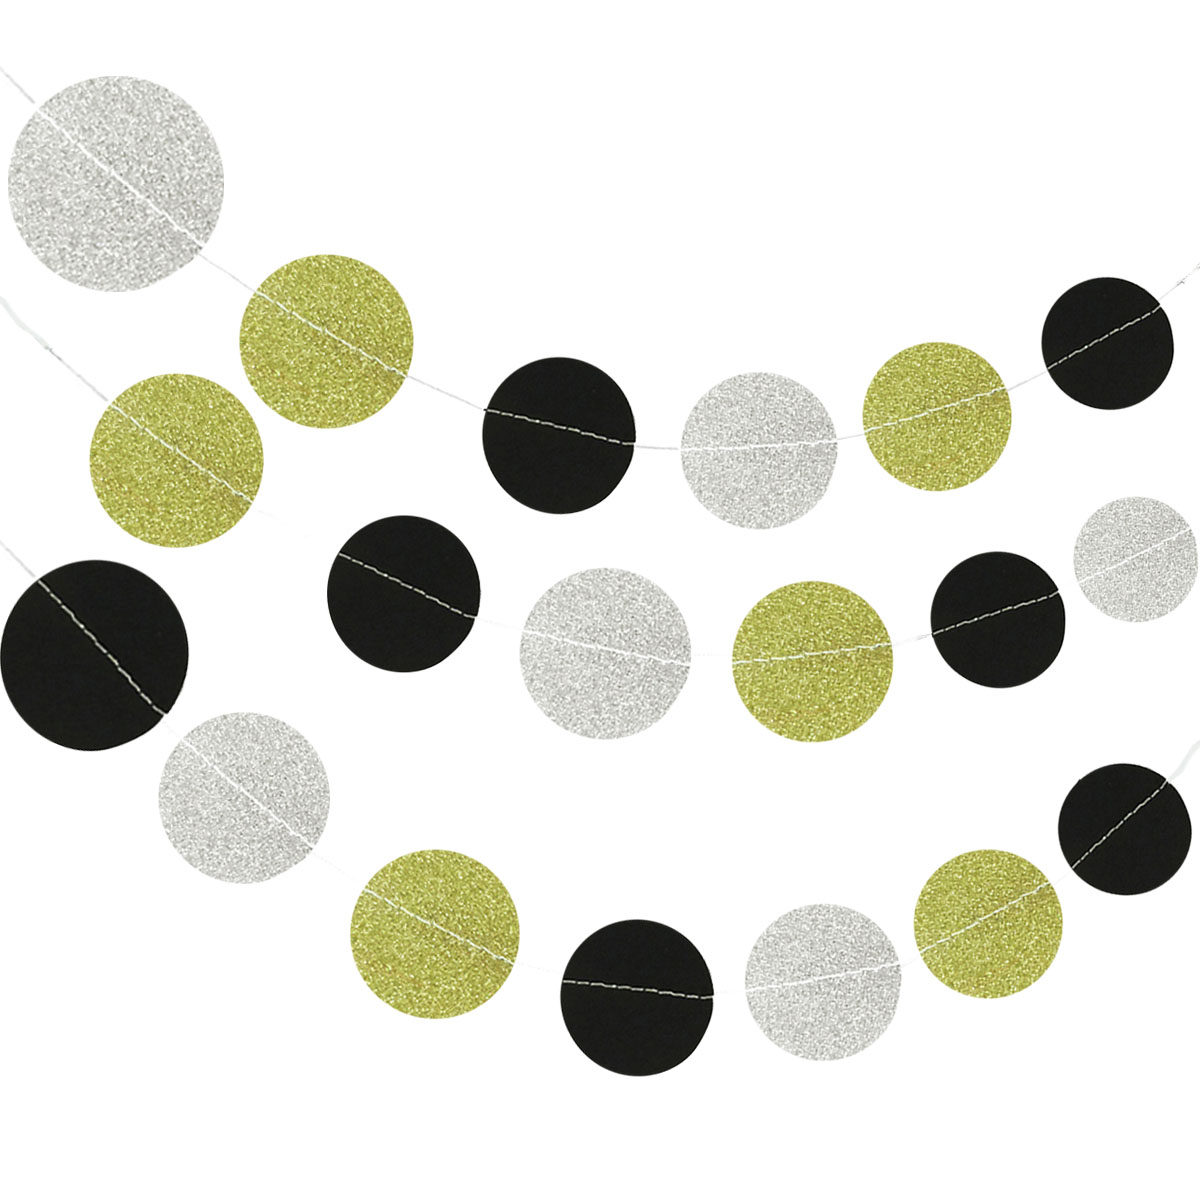 Wrapables® 13ft Paper Circle Dot Garland Party Decorations for Weddings, Birthday Parties, Baby Showers, and Nursery Décor (Set of 2), Aqua/Blue/White